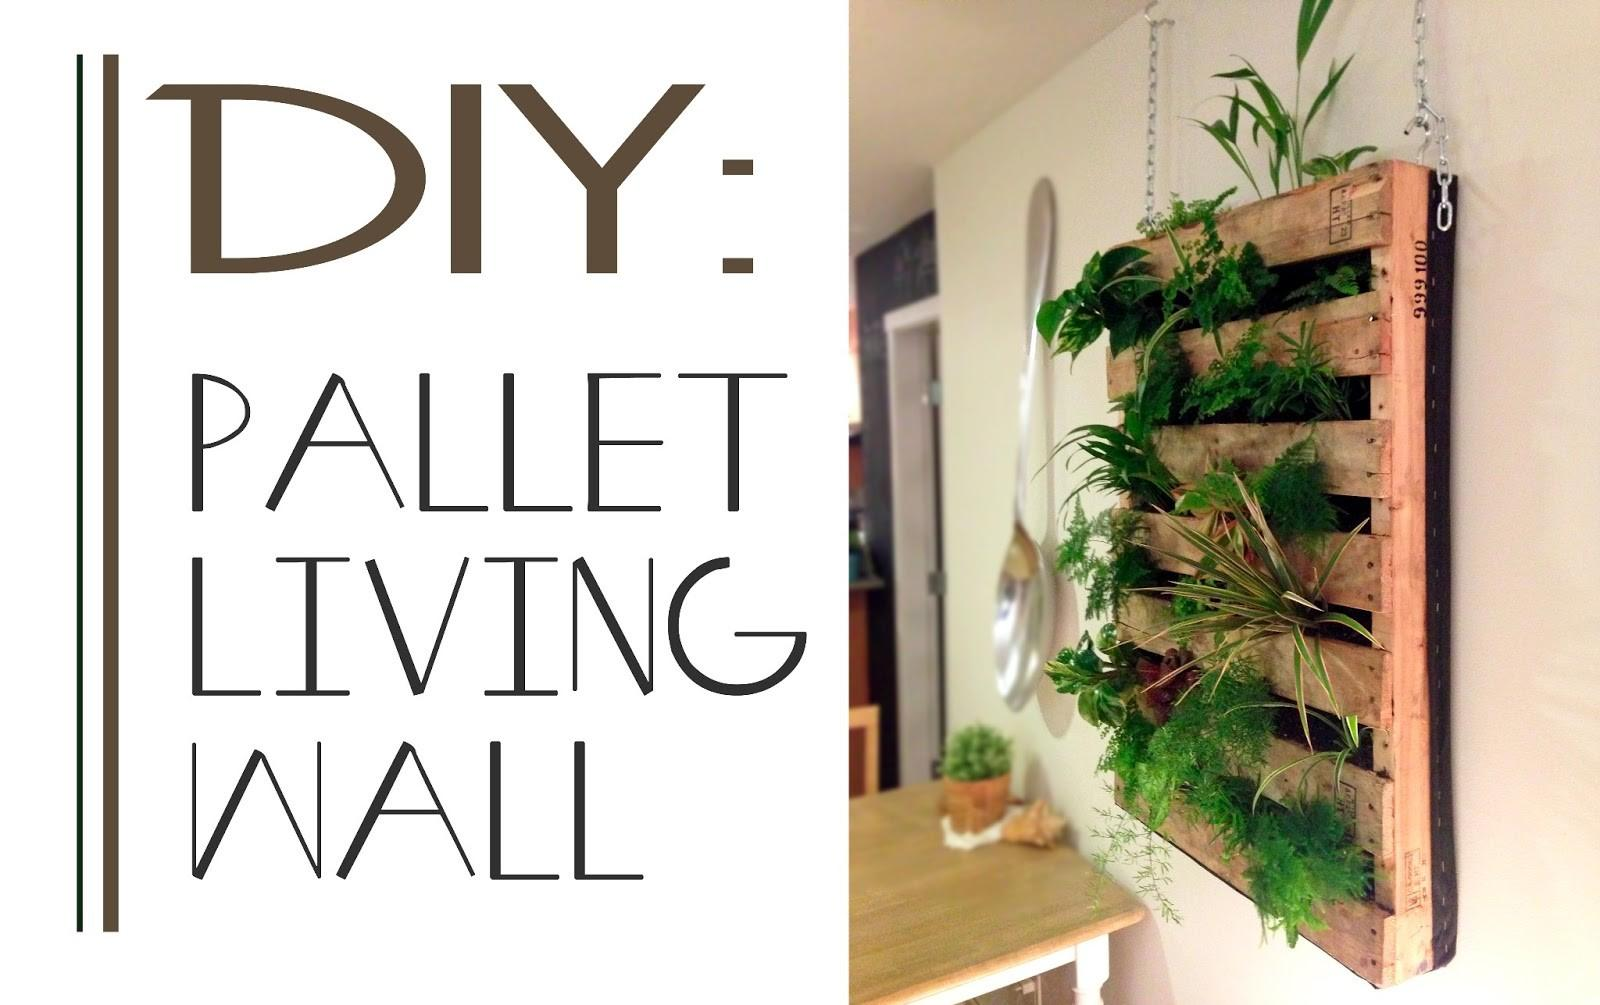 Brew Diy Pallet Living Wall